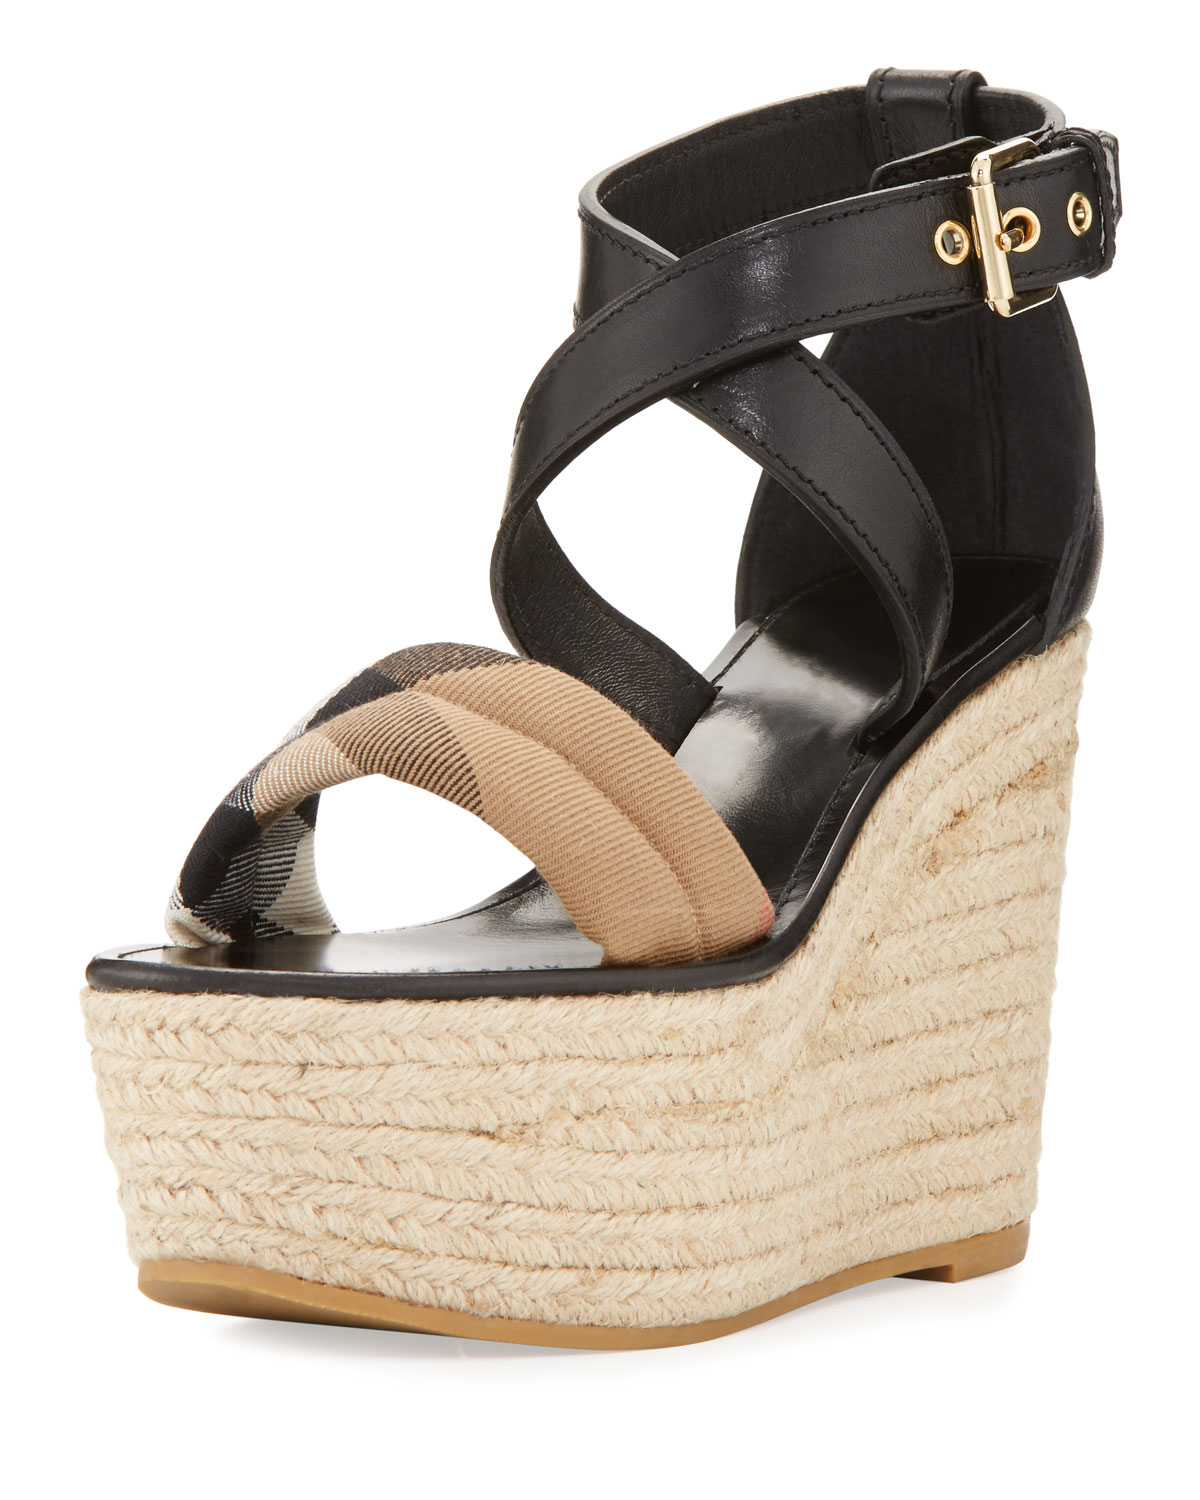 7bad5d6949b3 Burberry Arkinson Check Leather Wedge Sandal